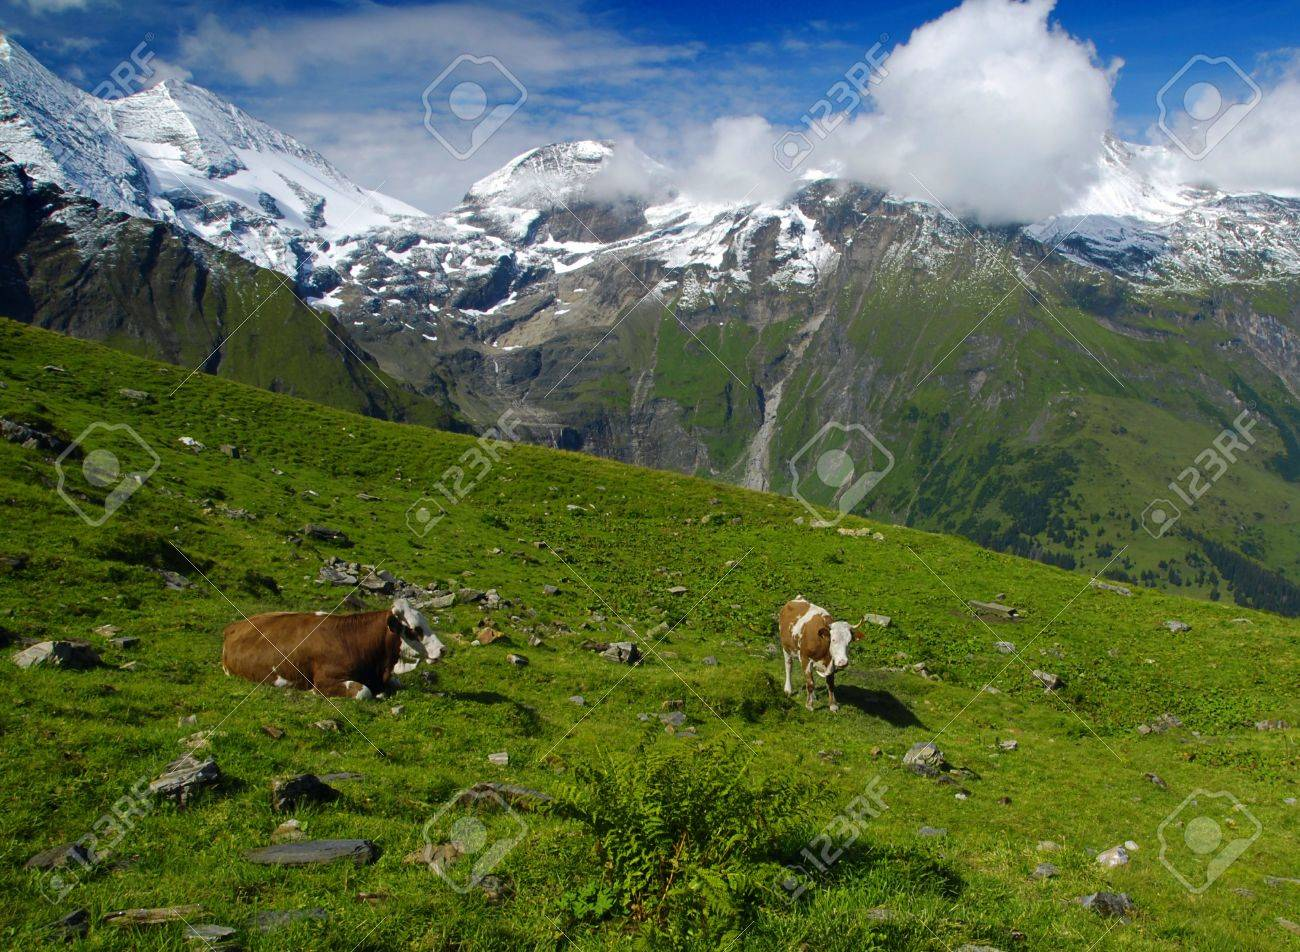 Beautiful alpine landscape with peaks covered by snow and green grass with cows in the foreground. Stock Photo - 5813968